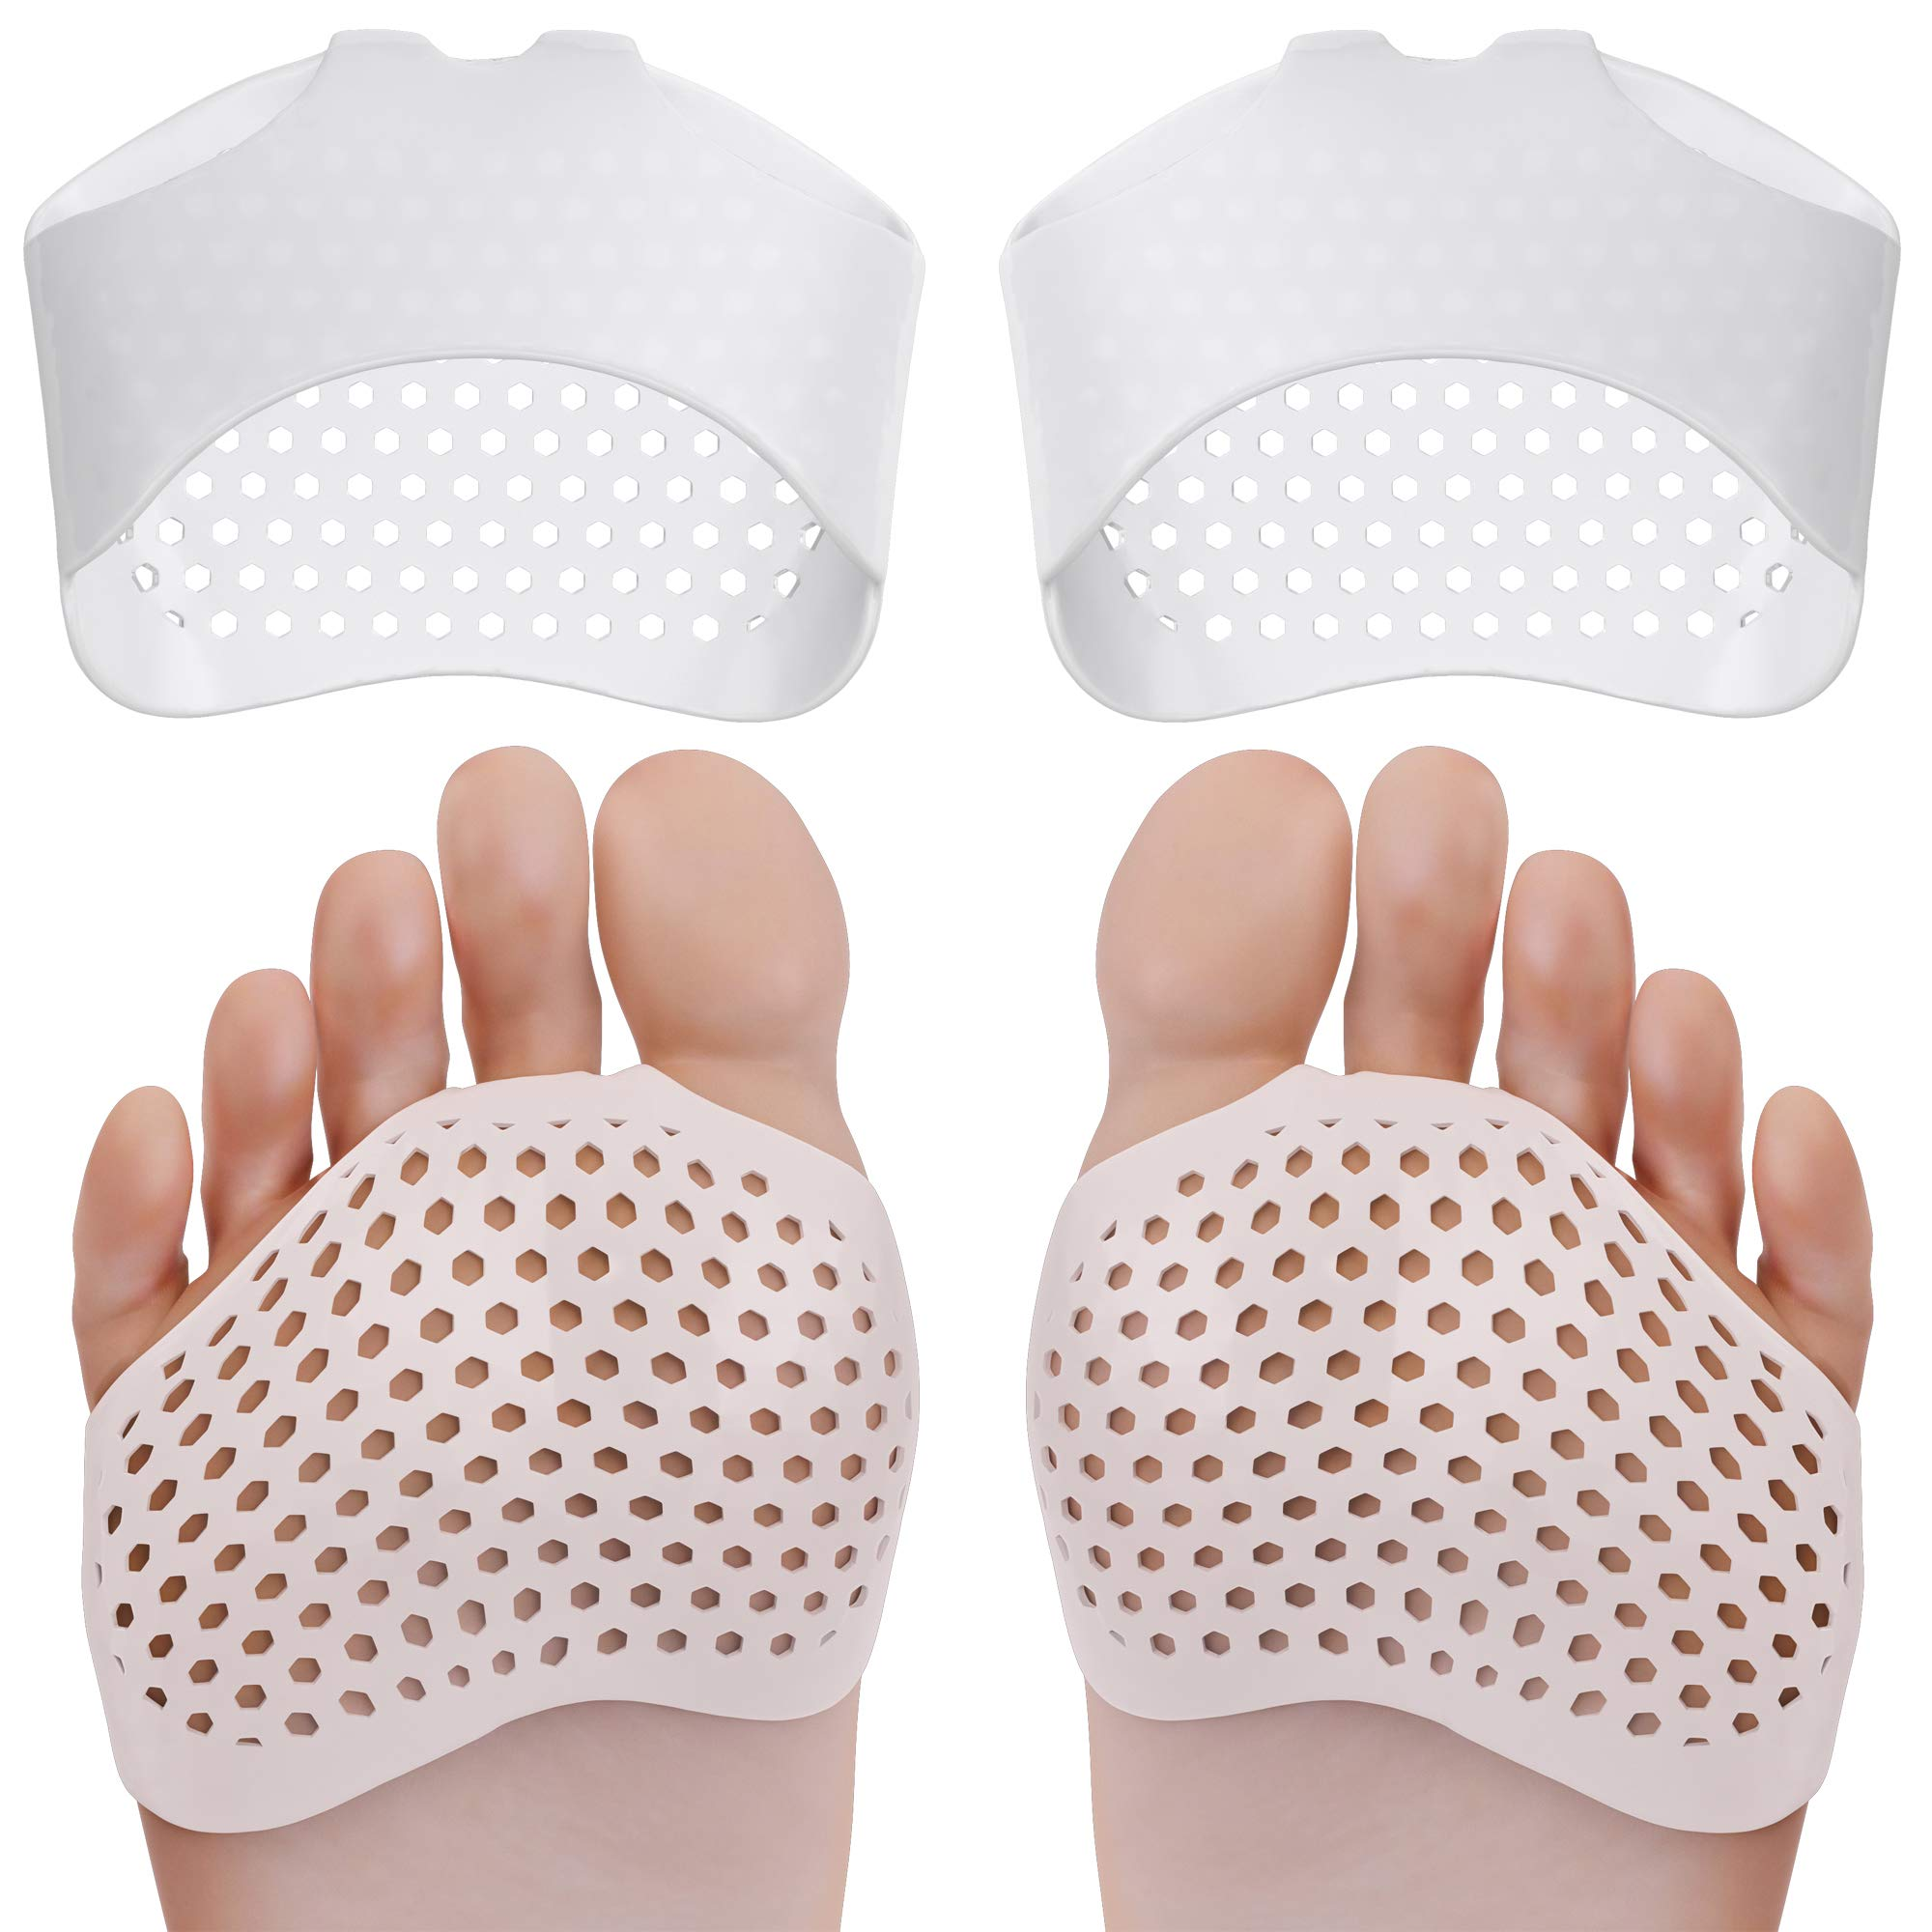 Ballotte Breathable Metatarsal Pads (2Pairs) - Ball of Foot Pain Relief Cushions for Men and Women